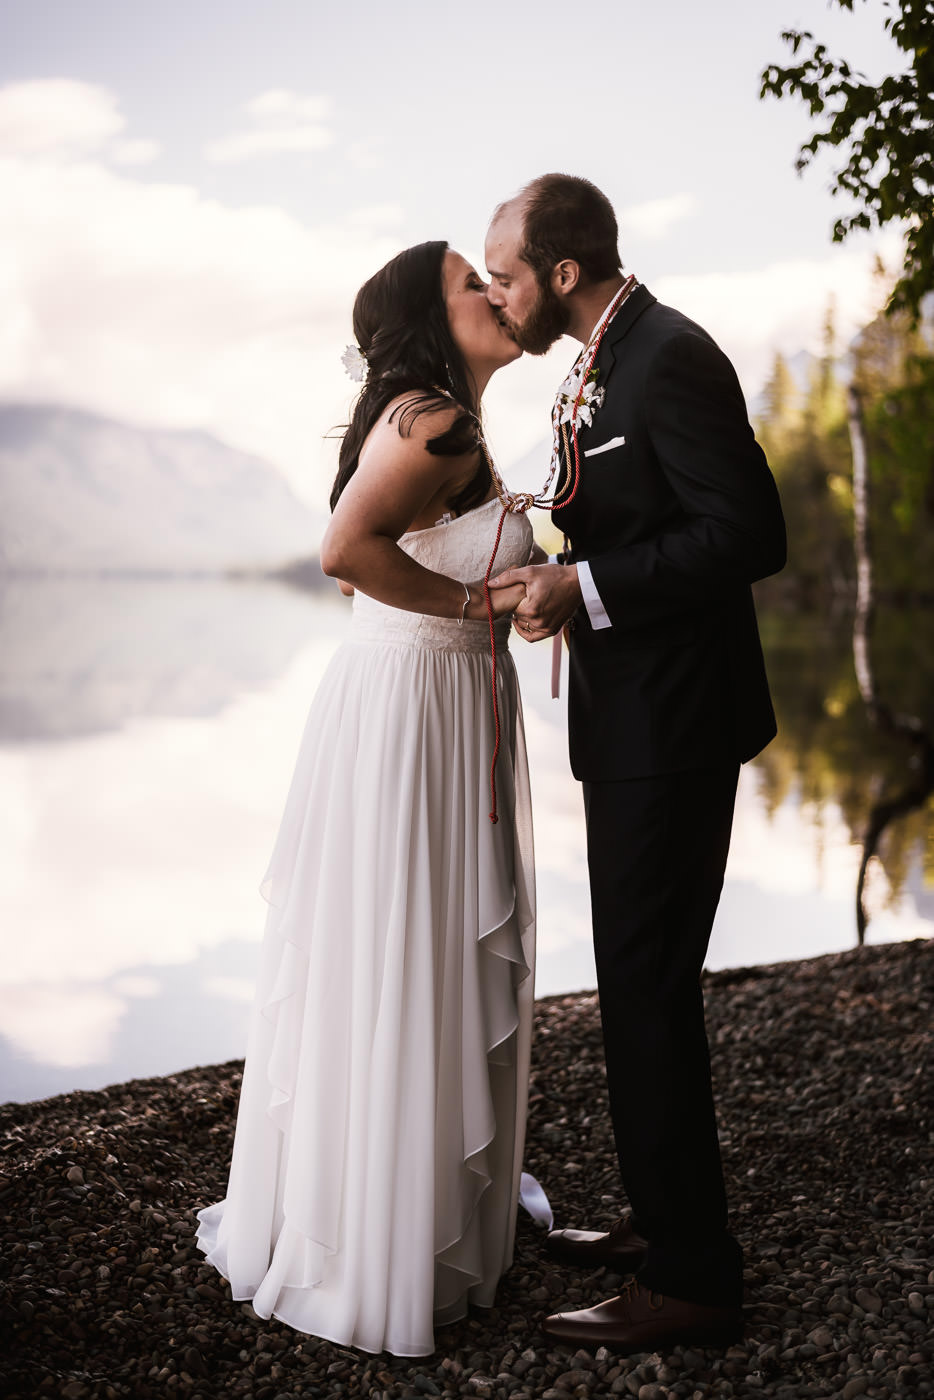 Couple has the first kiss at their adventurous elopement.